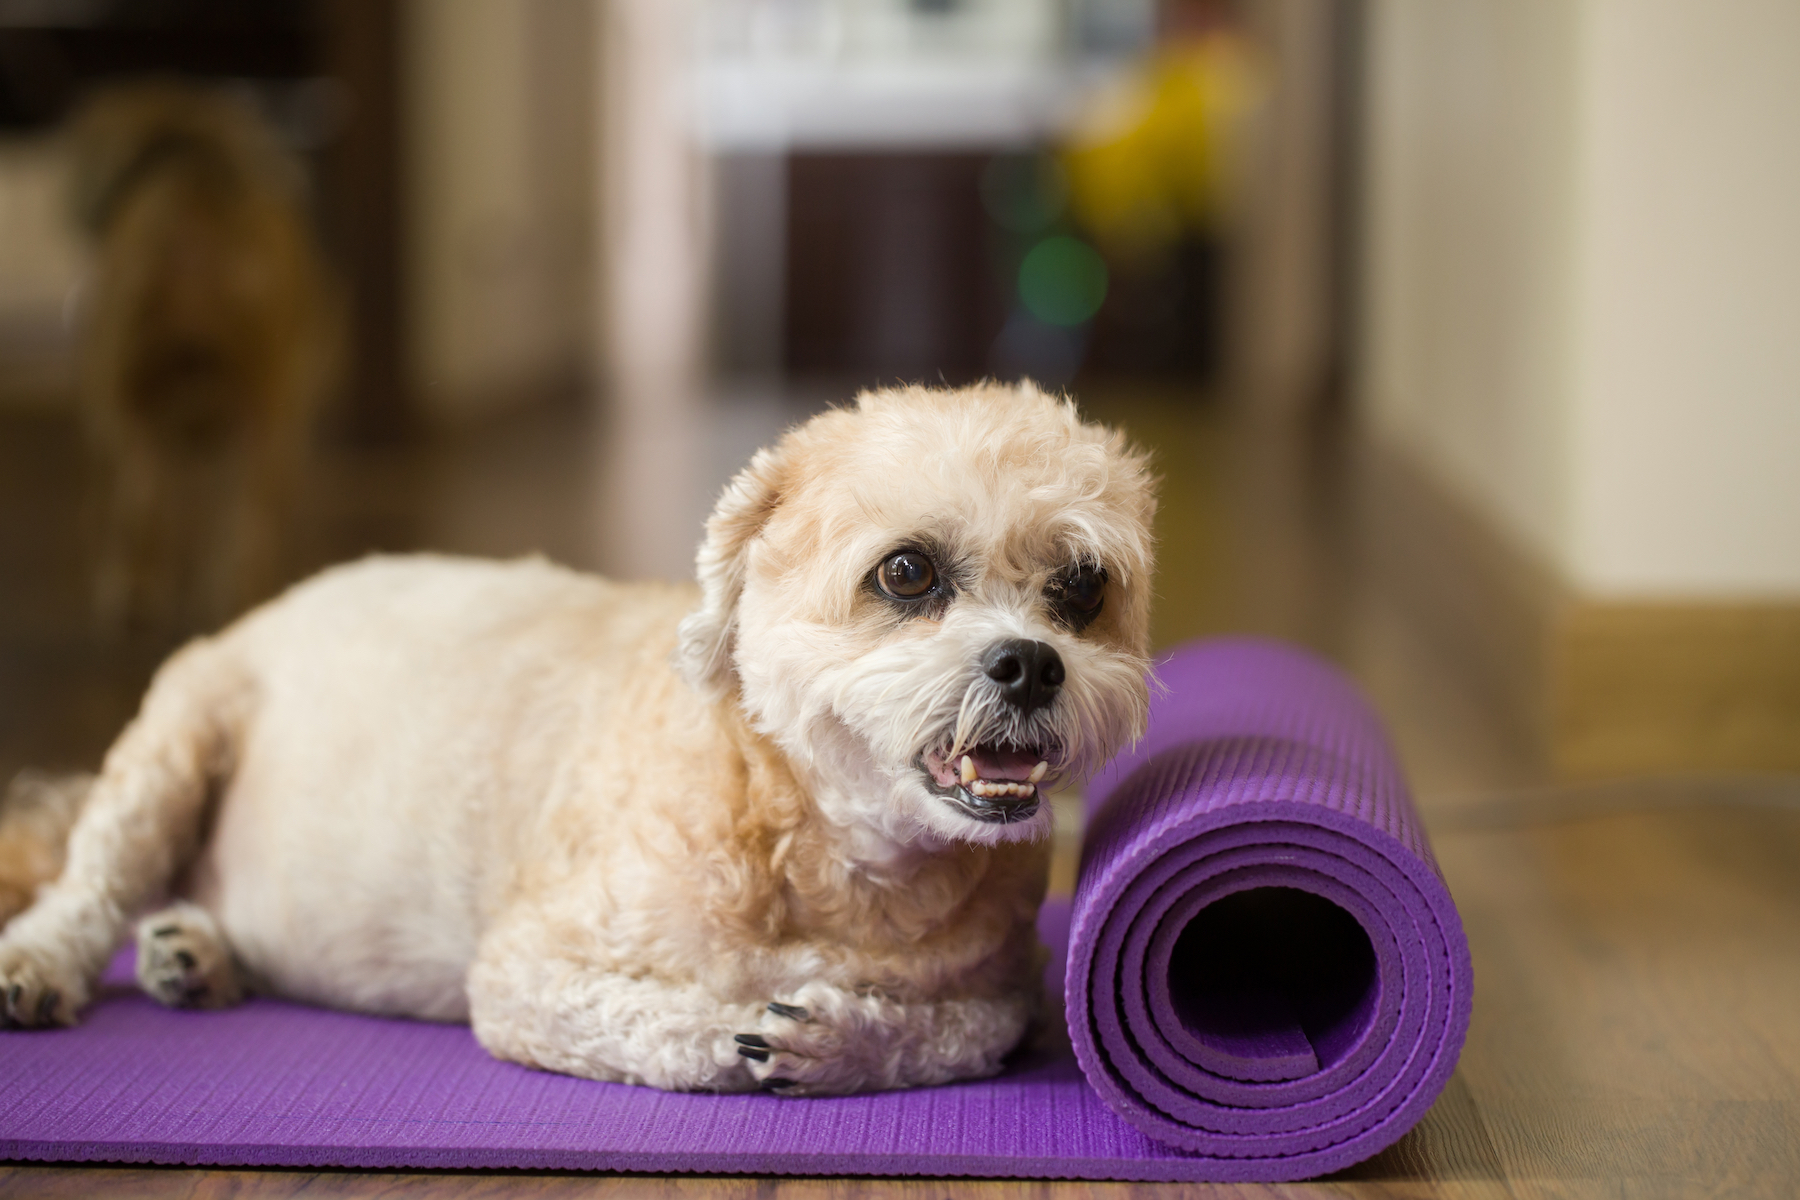 Canva - Dog on yoga mat